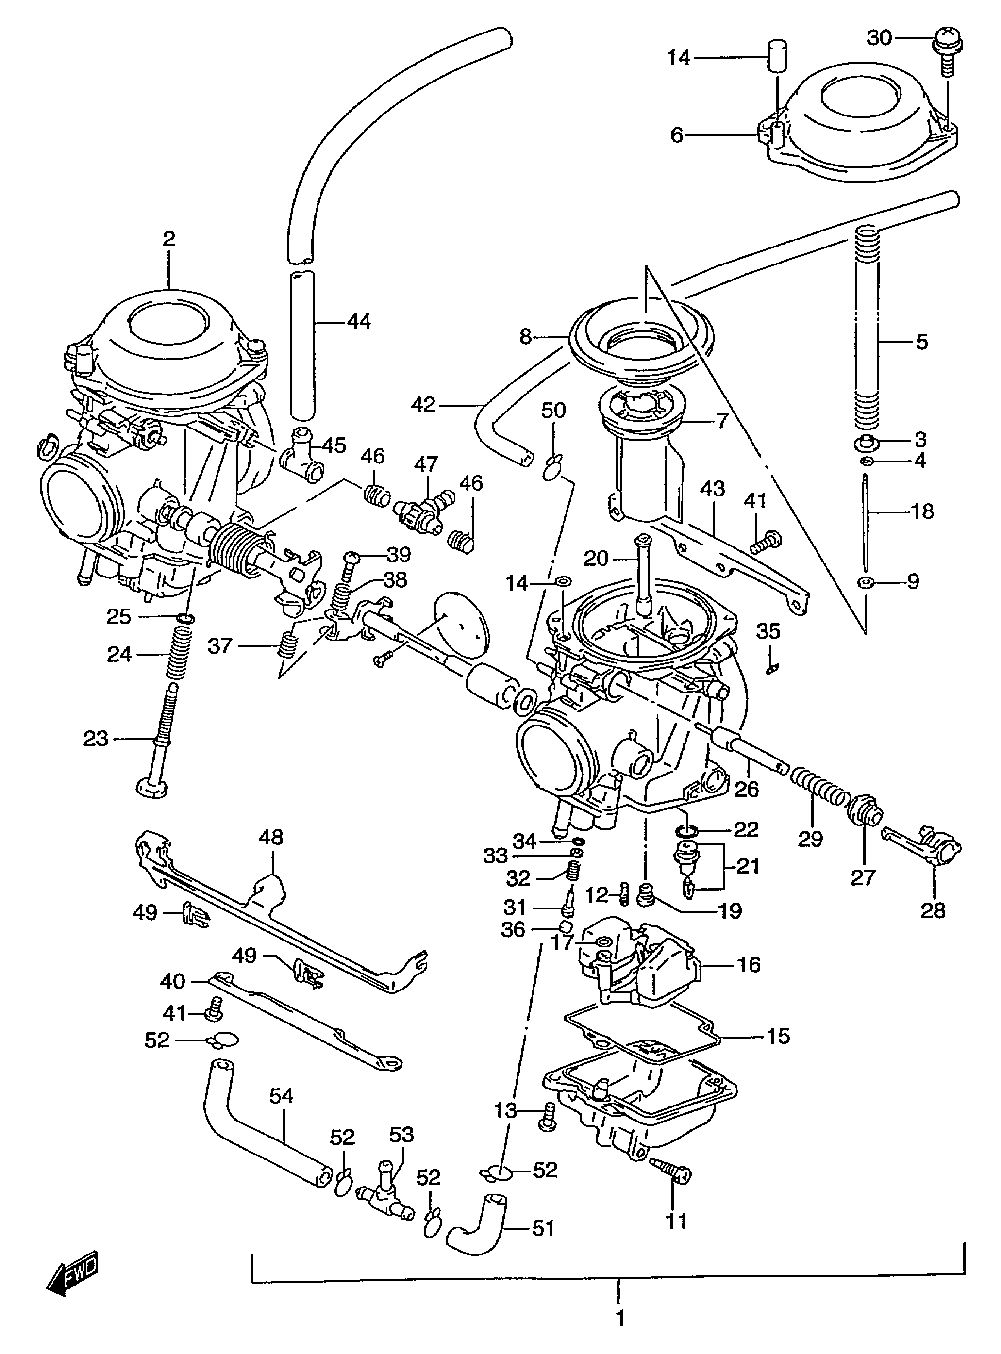 suzuki bandit 1200 carburetor diagram  u2013 motorcycle image idea